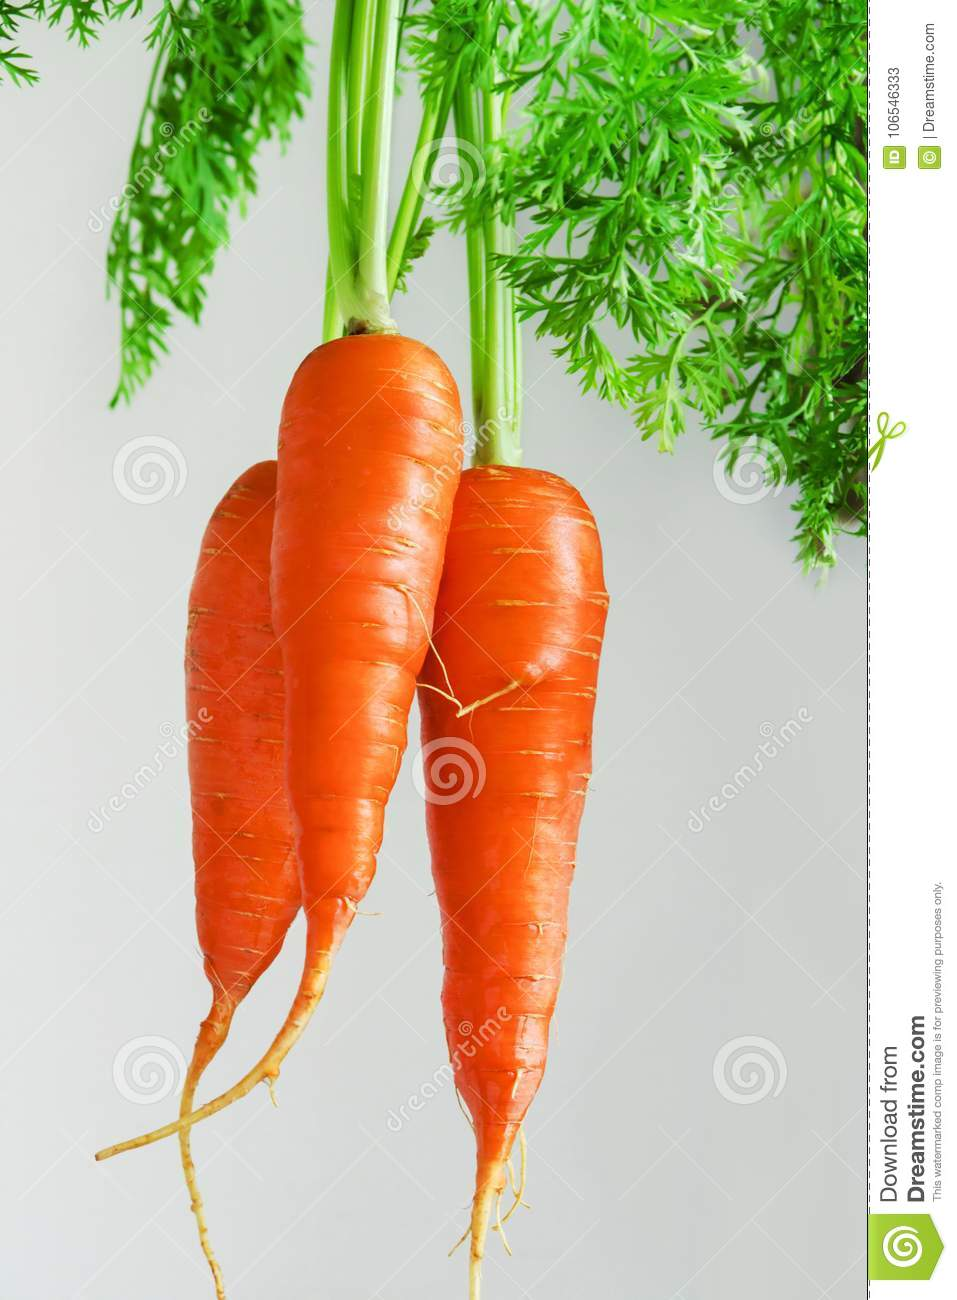 Important human food, carrot root vegetables, rich in carotene, vegetarian nutrition and health ingredients,